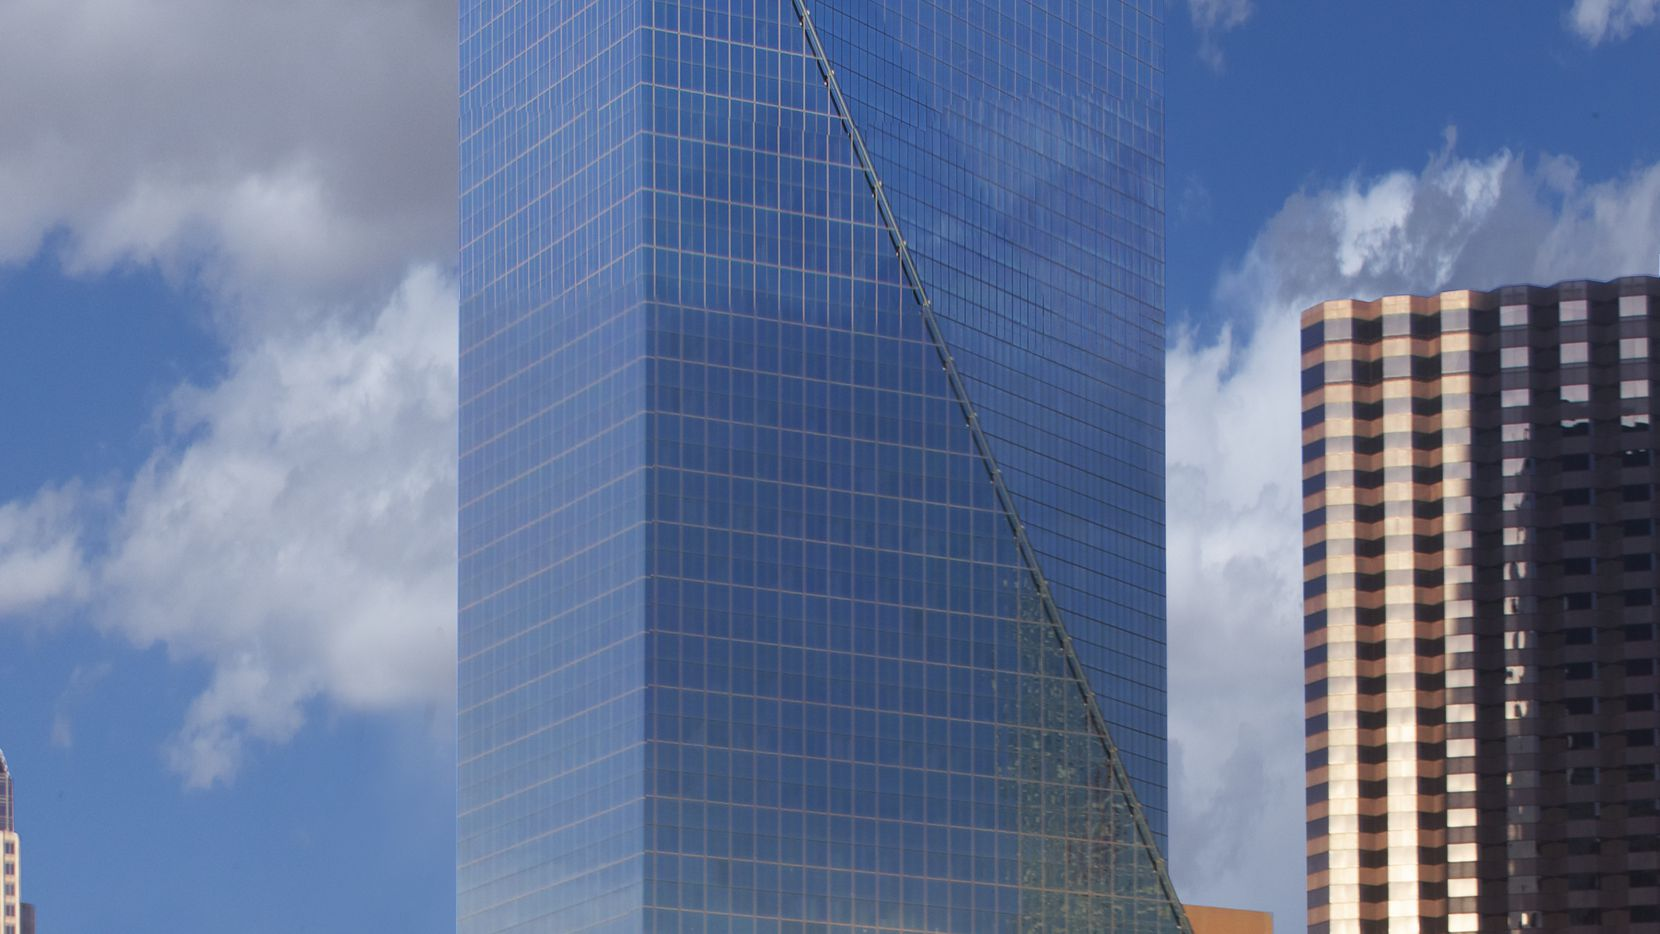 Tenet Healthcare is seeking to sublease nine floors in the tower.